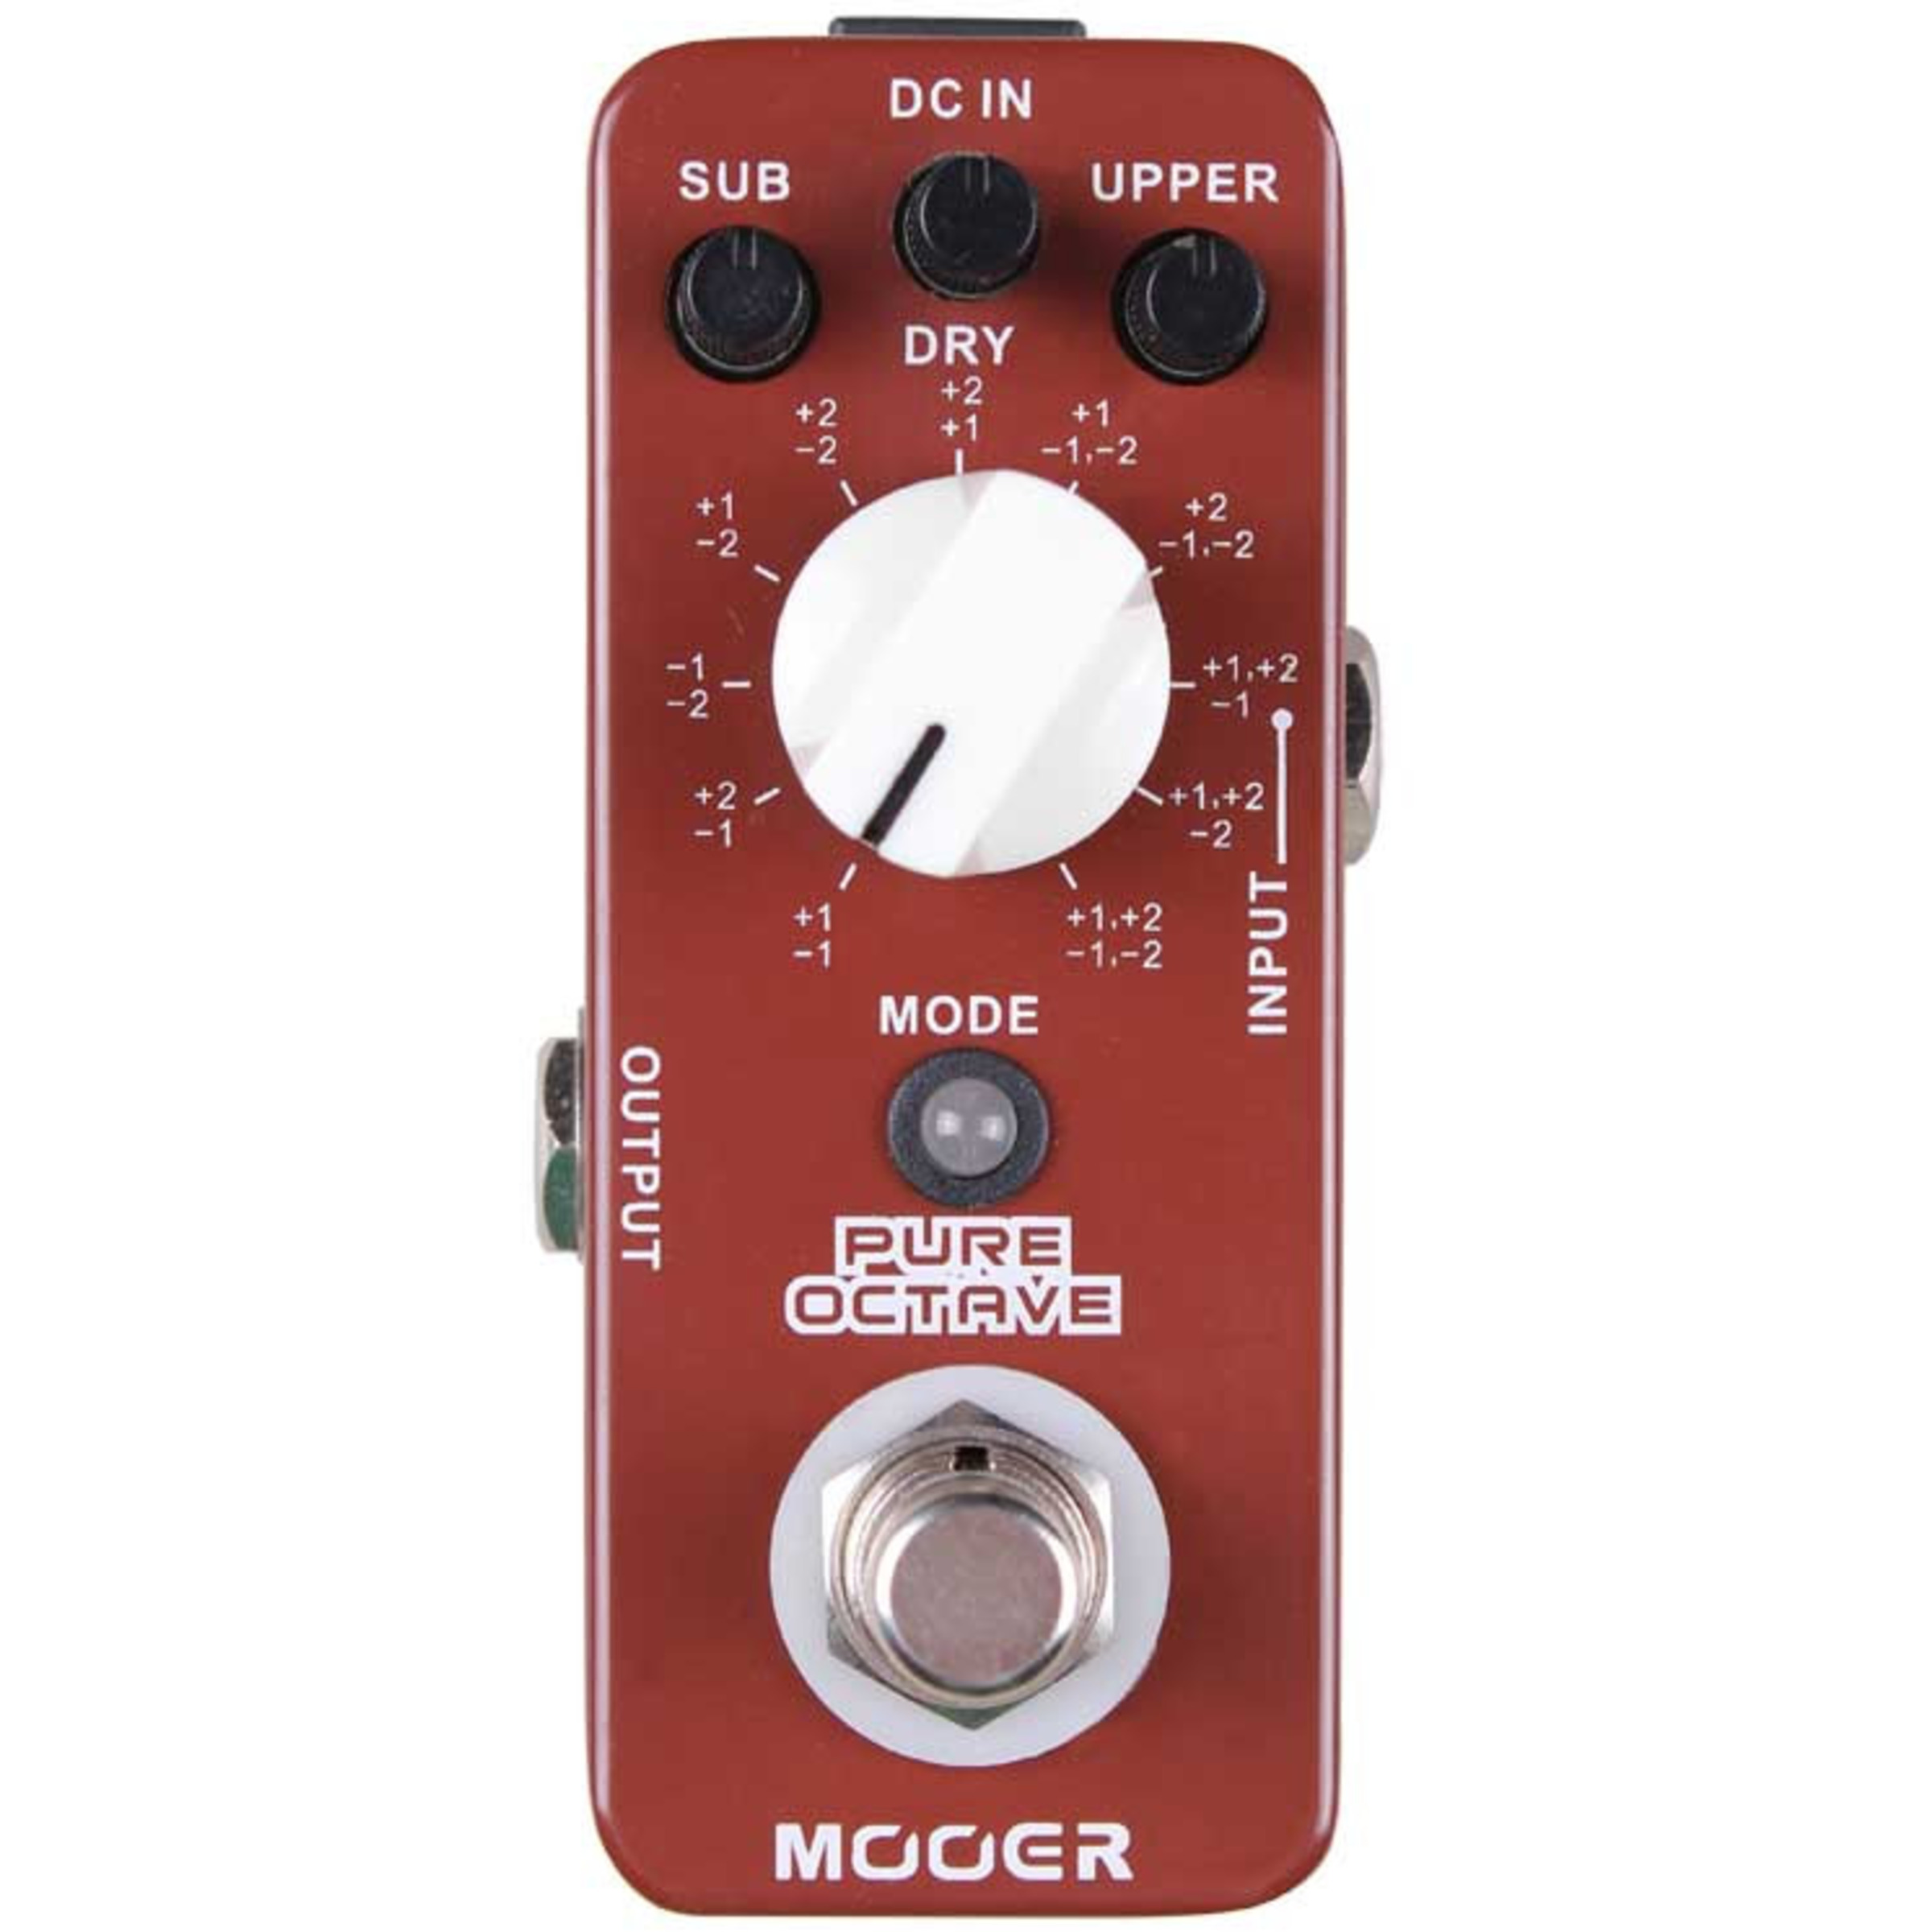 mooer pure octave pedal giggear